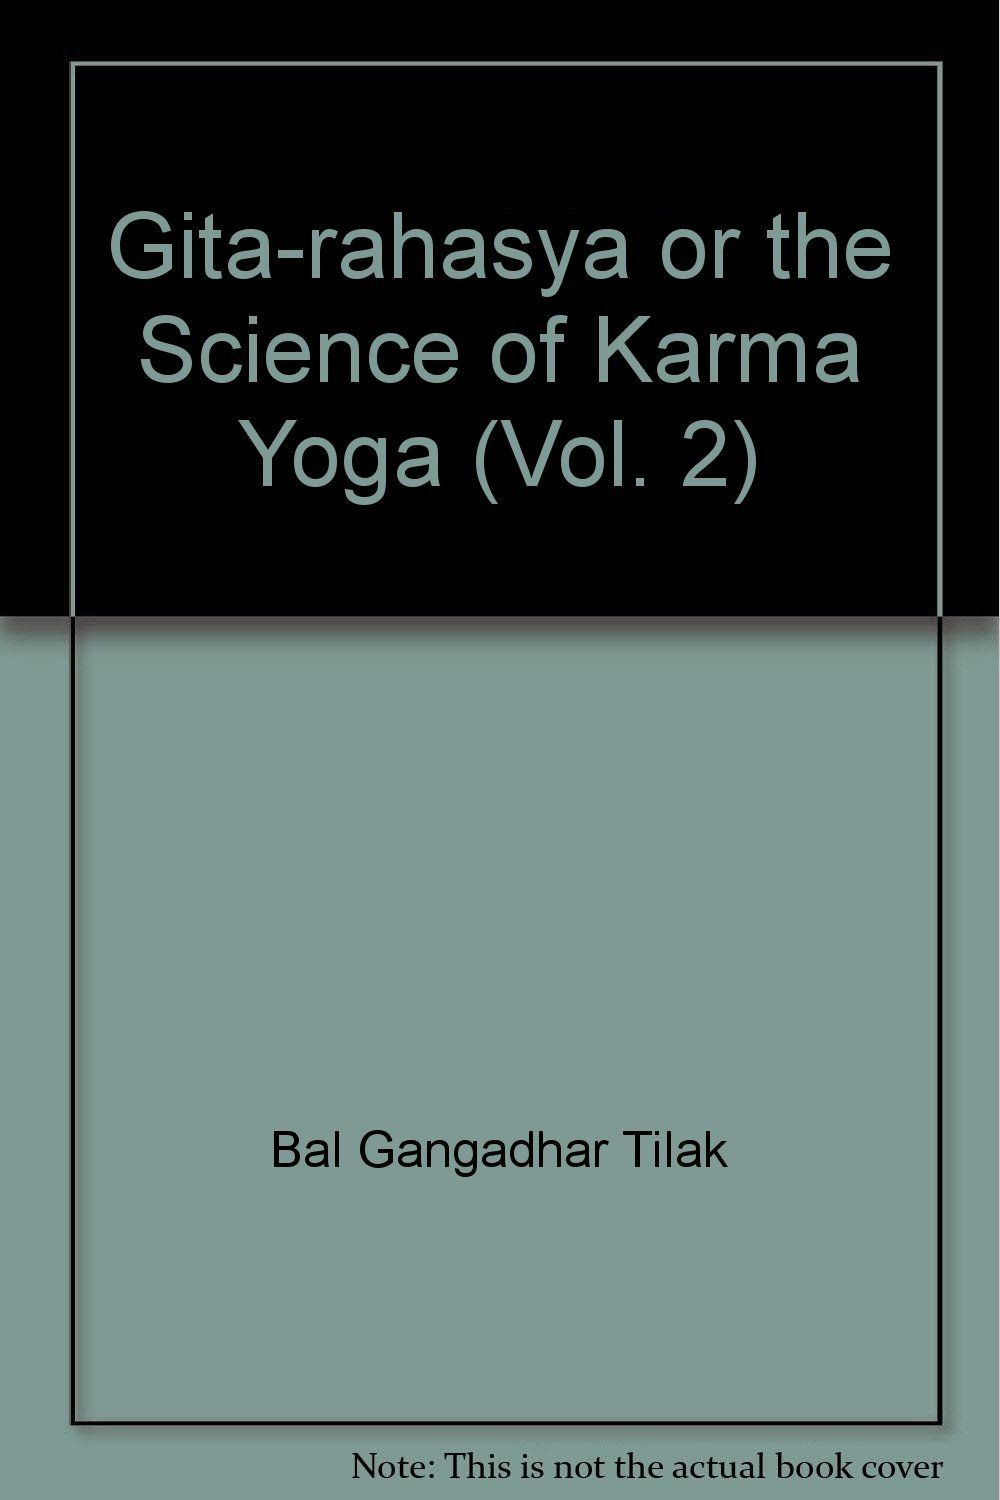 Gita-rahasya or the Science of Karma Yoga (Vol. 2): Bal ...